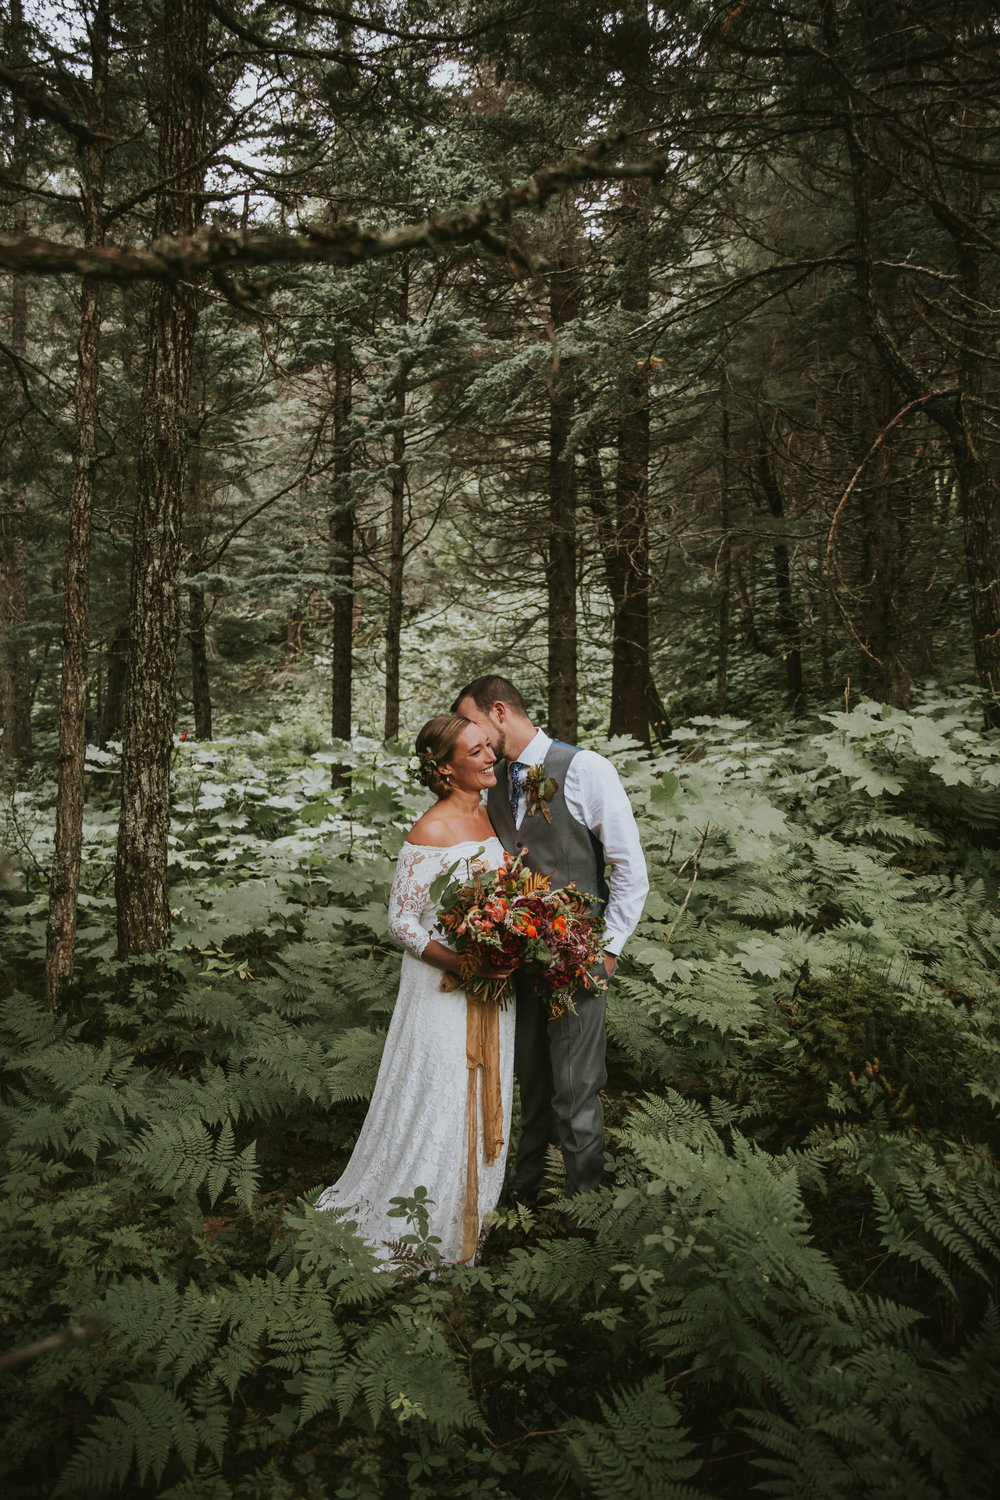 KELLI AND RYAN WEDDING - GIRDWOOD, ALASKA